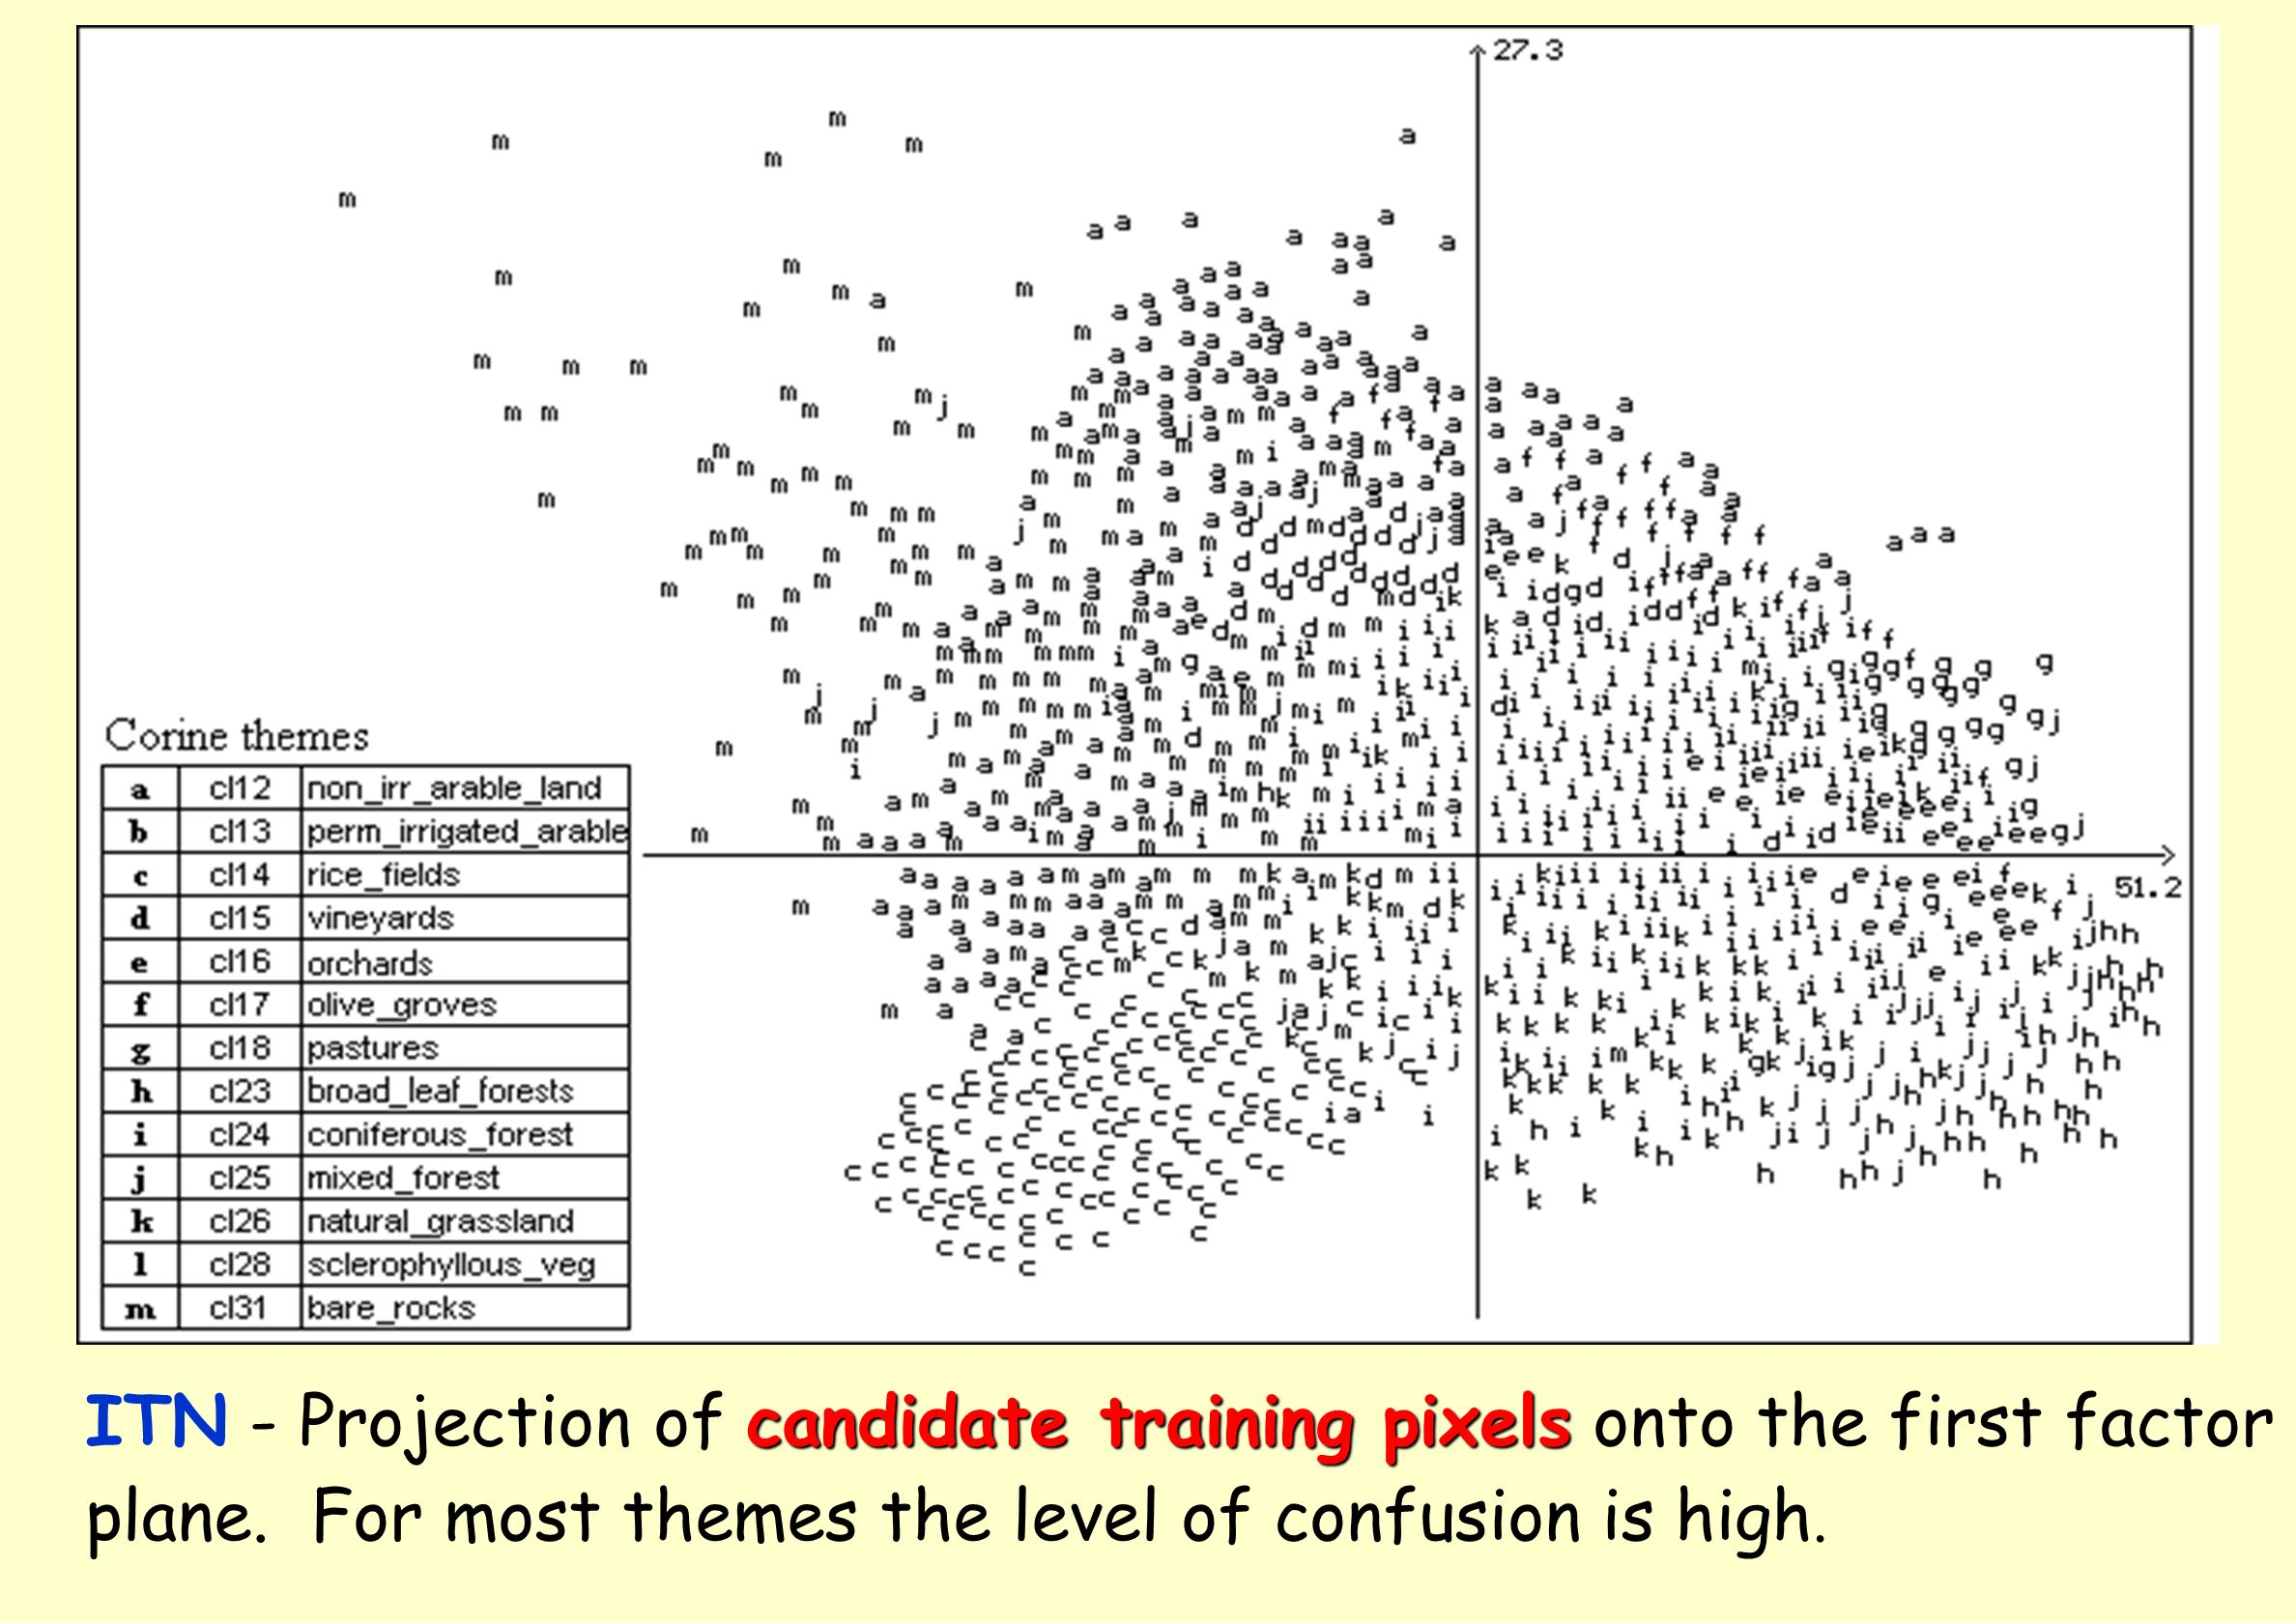 ITN - Projection of candidate training pixels onto the first factor